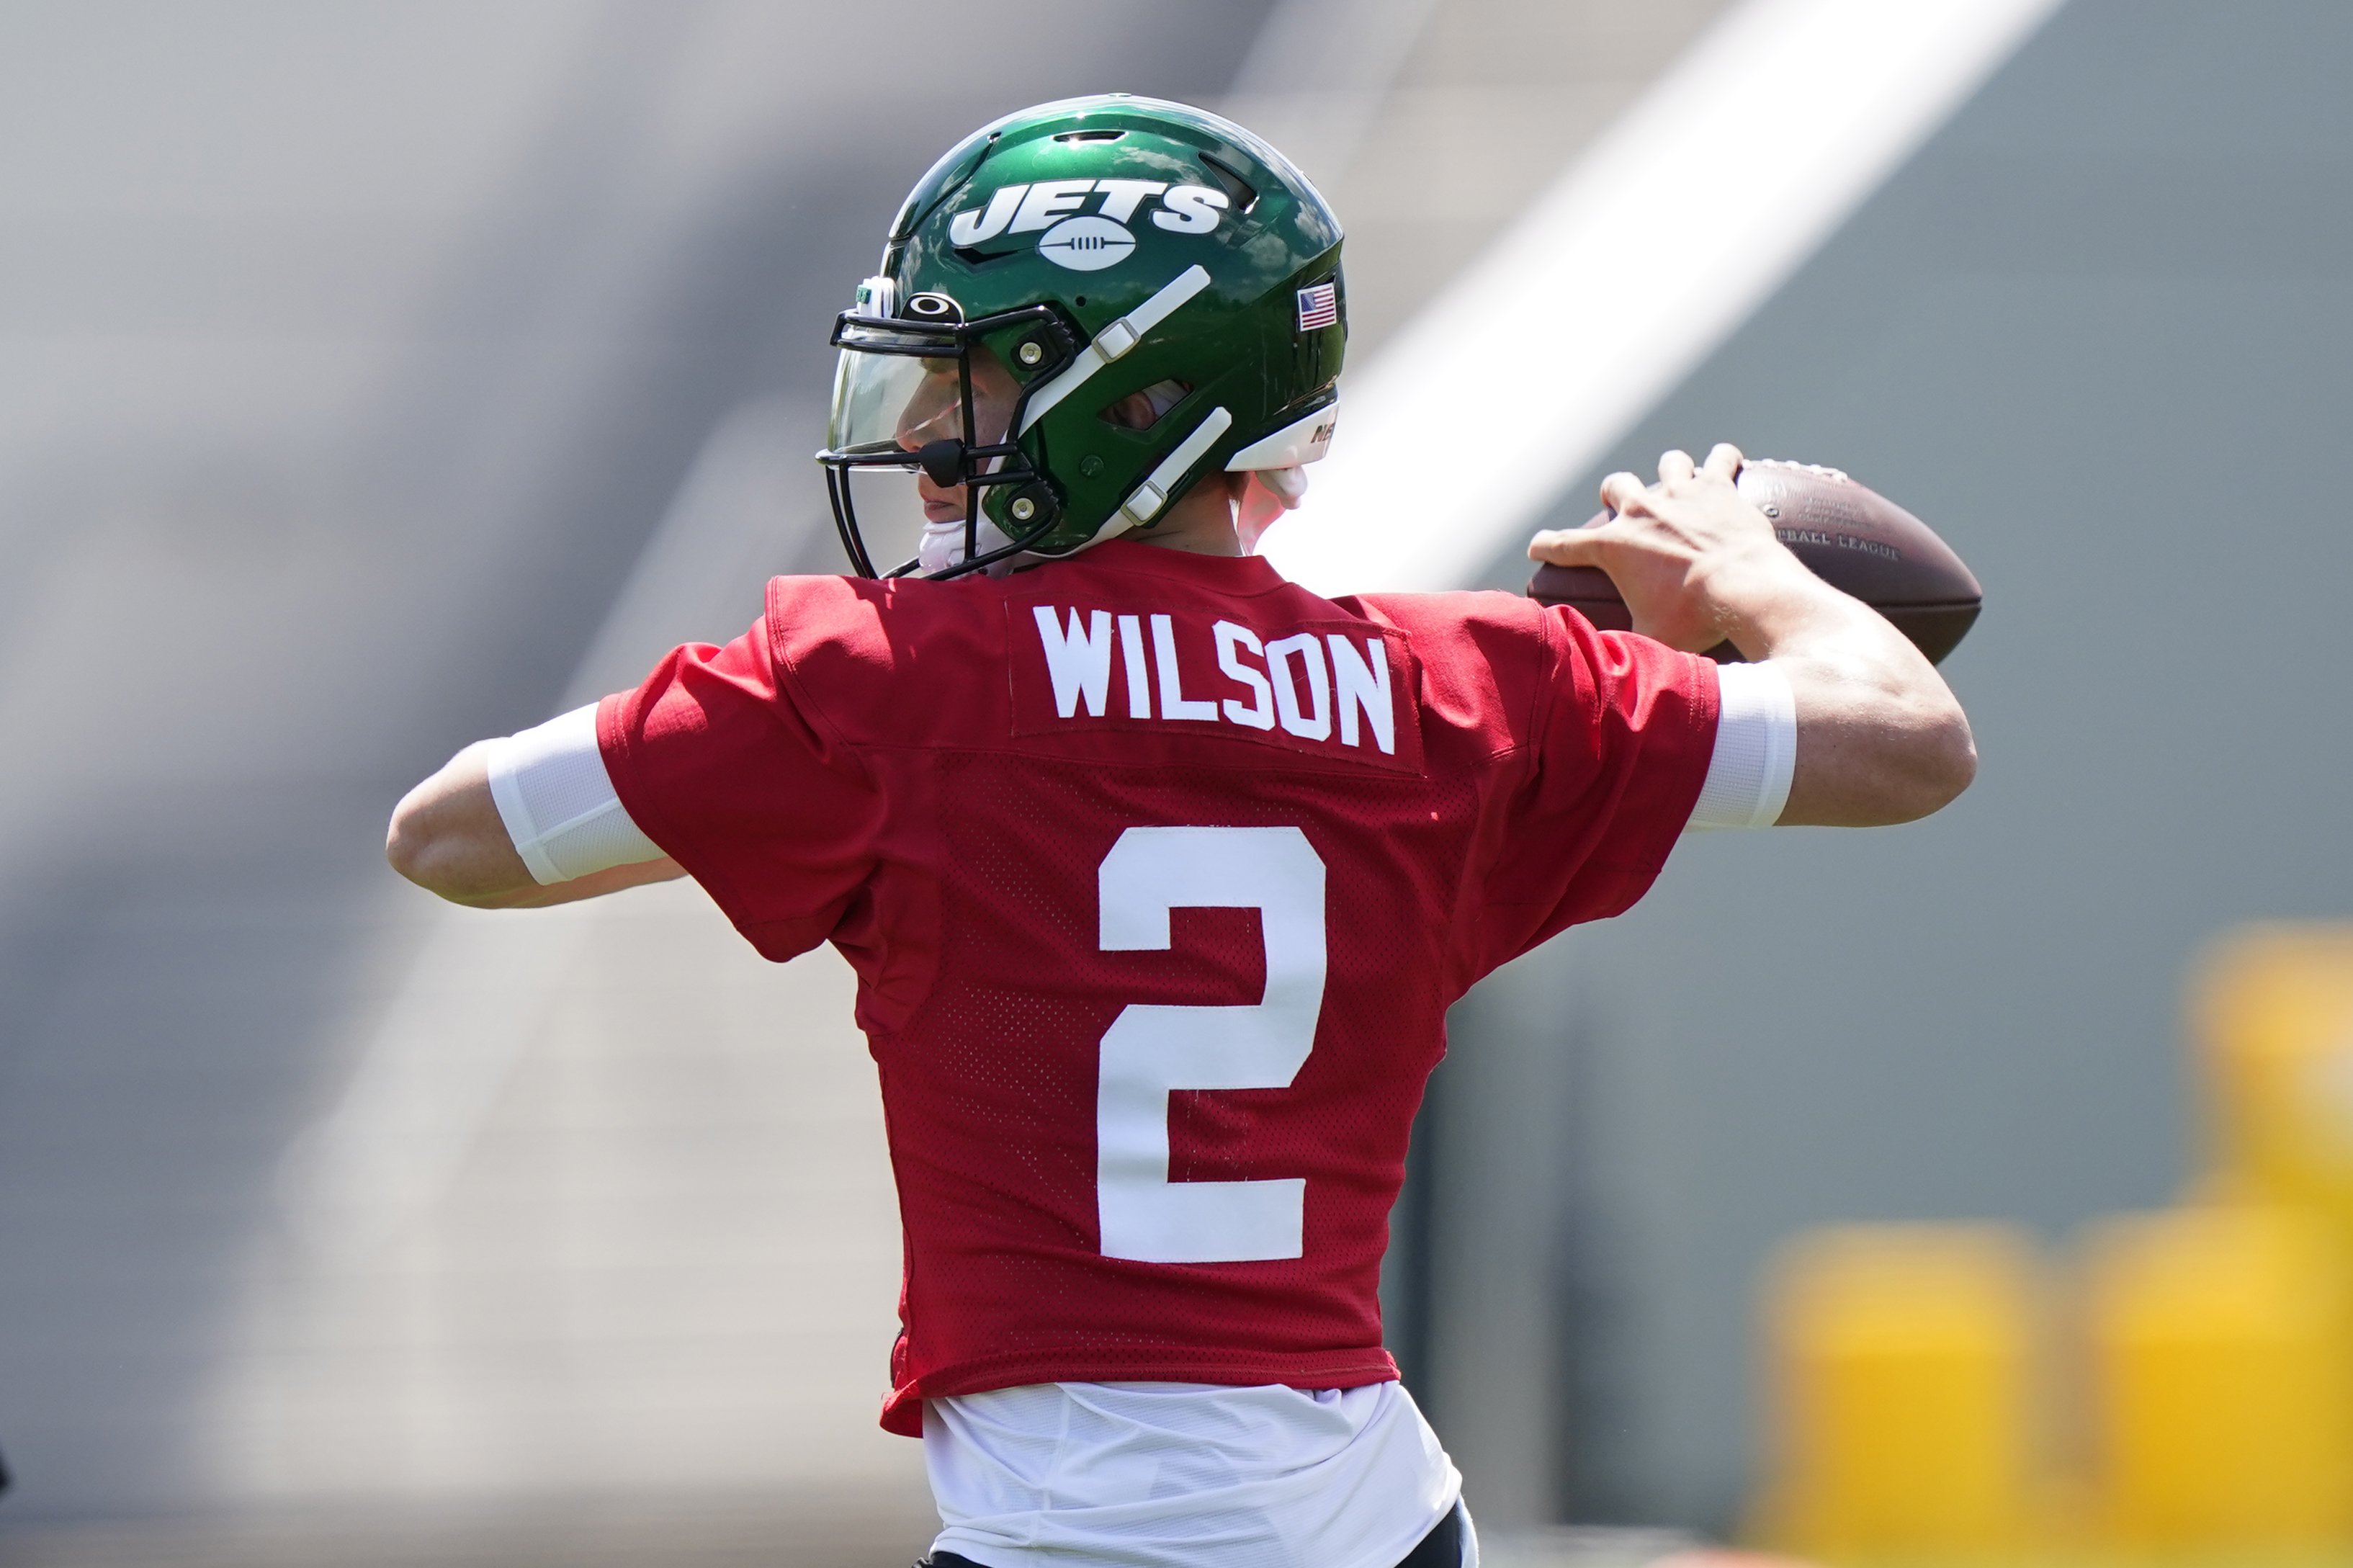 New York Jets quarterback Zach Wilson passes the ball during an NFL football practice.